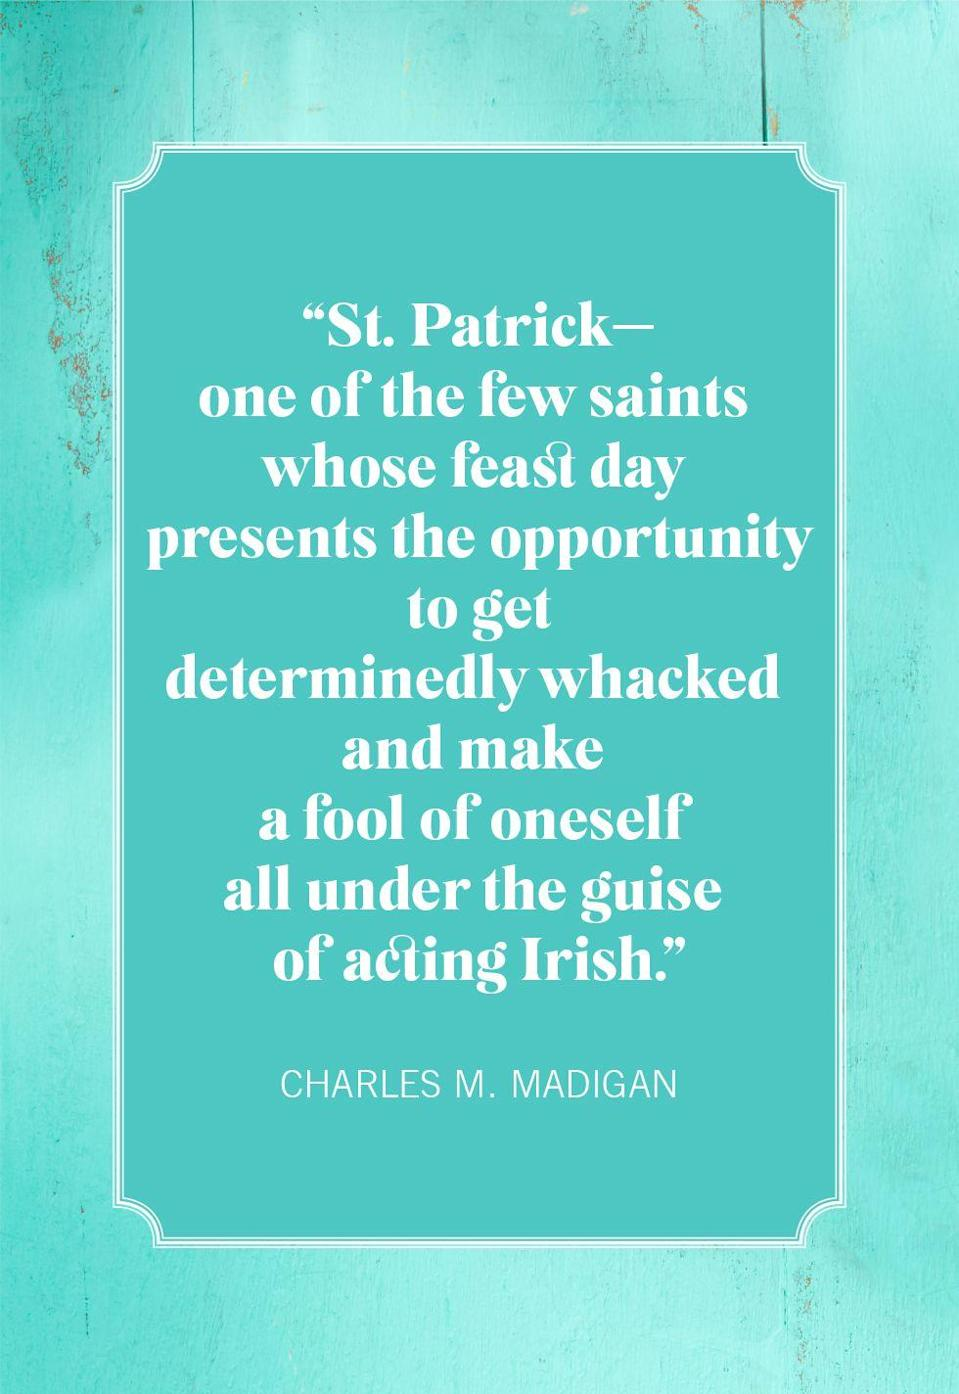 "<p>""St. Patrick—one of the few saints whose feast day presents the opportunity to get determinedly whacked and make a fool of oneself all under the guise of acting Irish.""</p>"